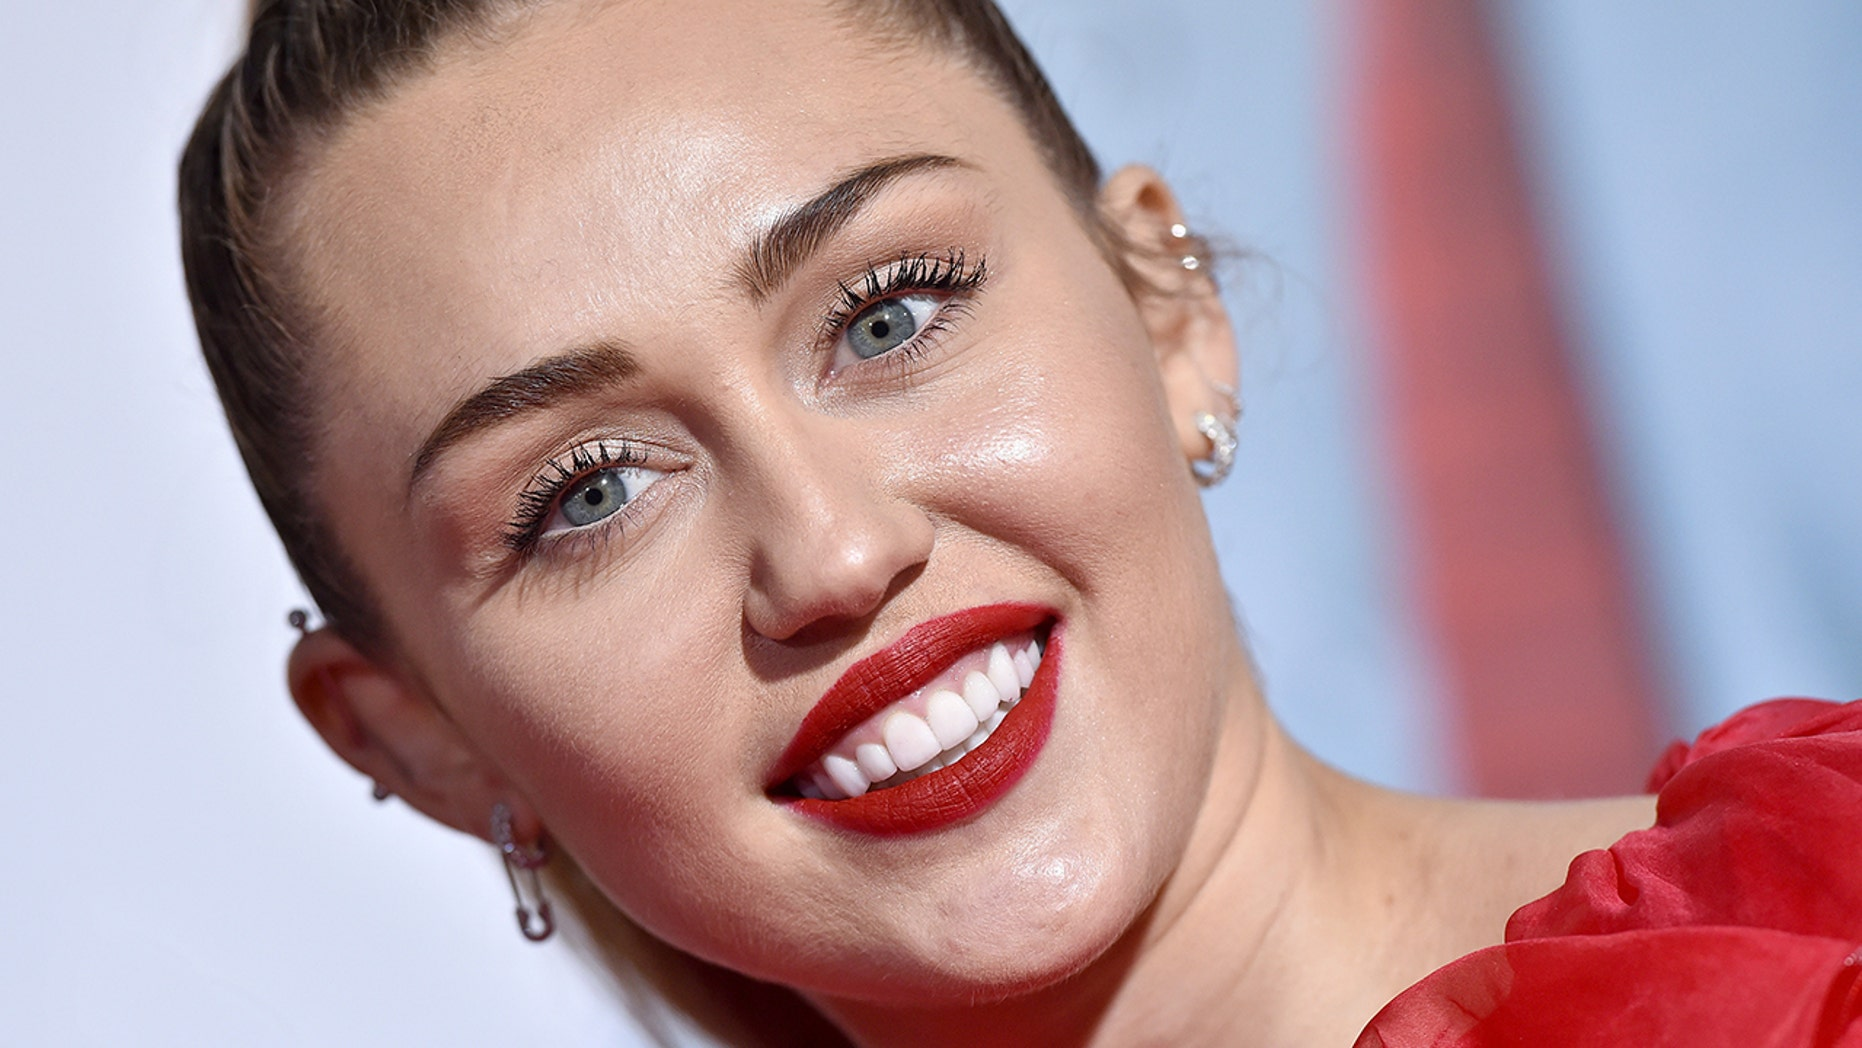 Miley Cyrus tweets hilariously NSFW Valentine's greeting to husband Liam Hemsworth